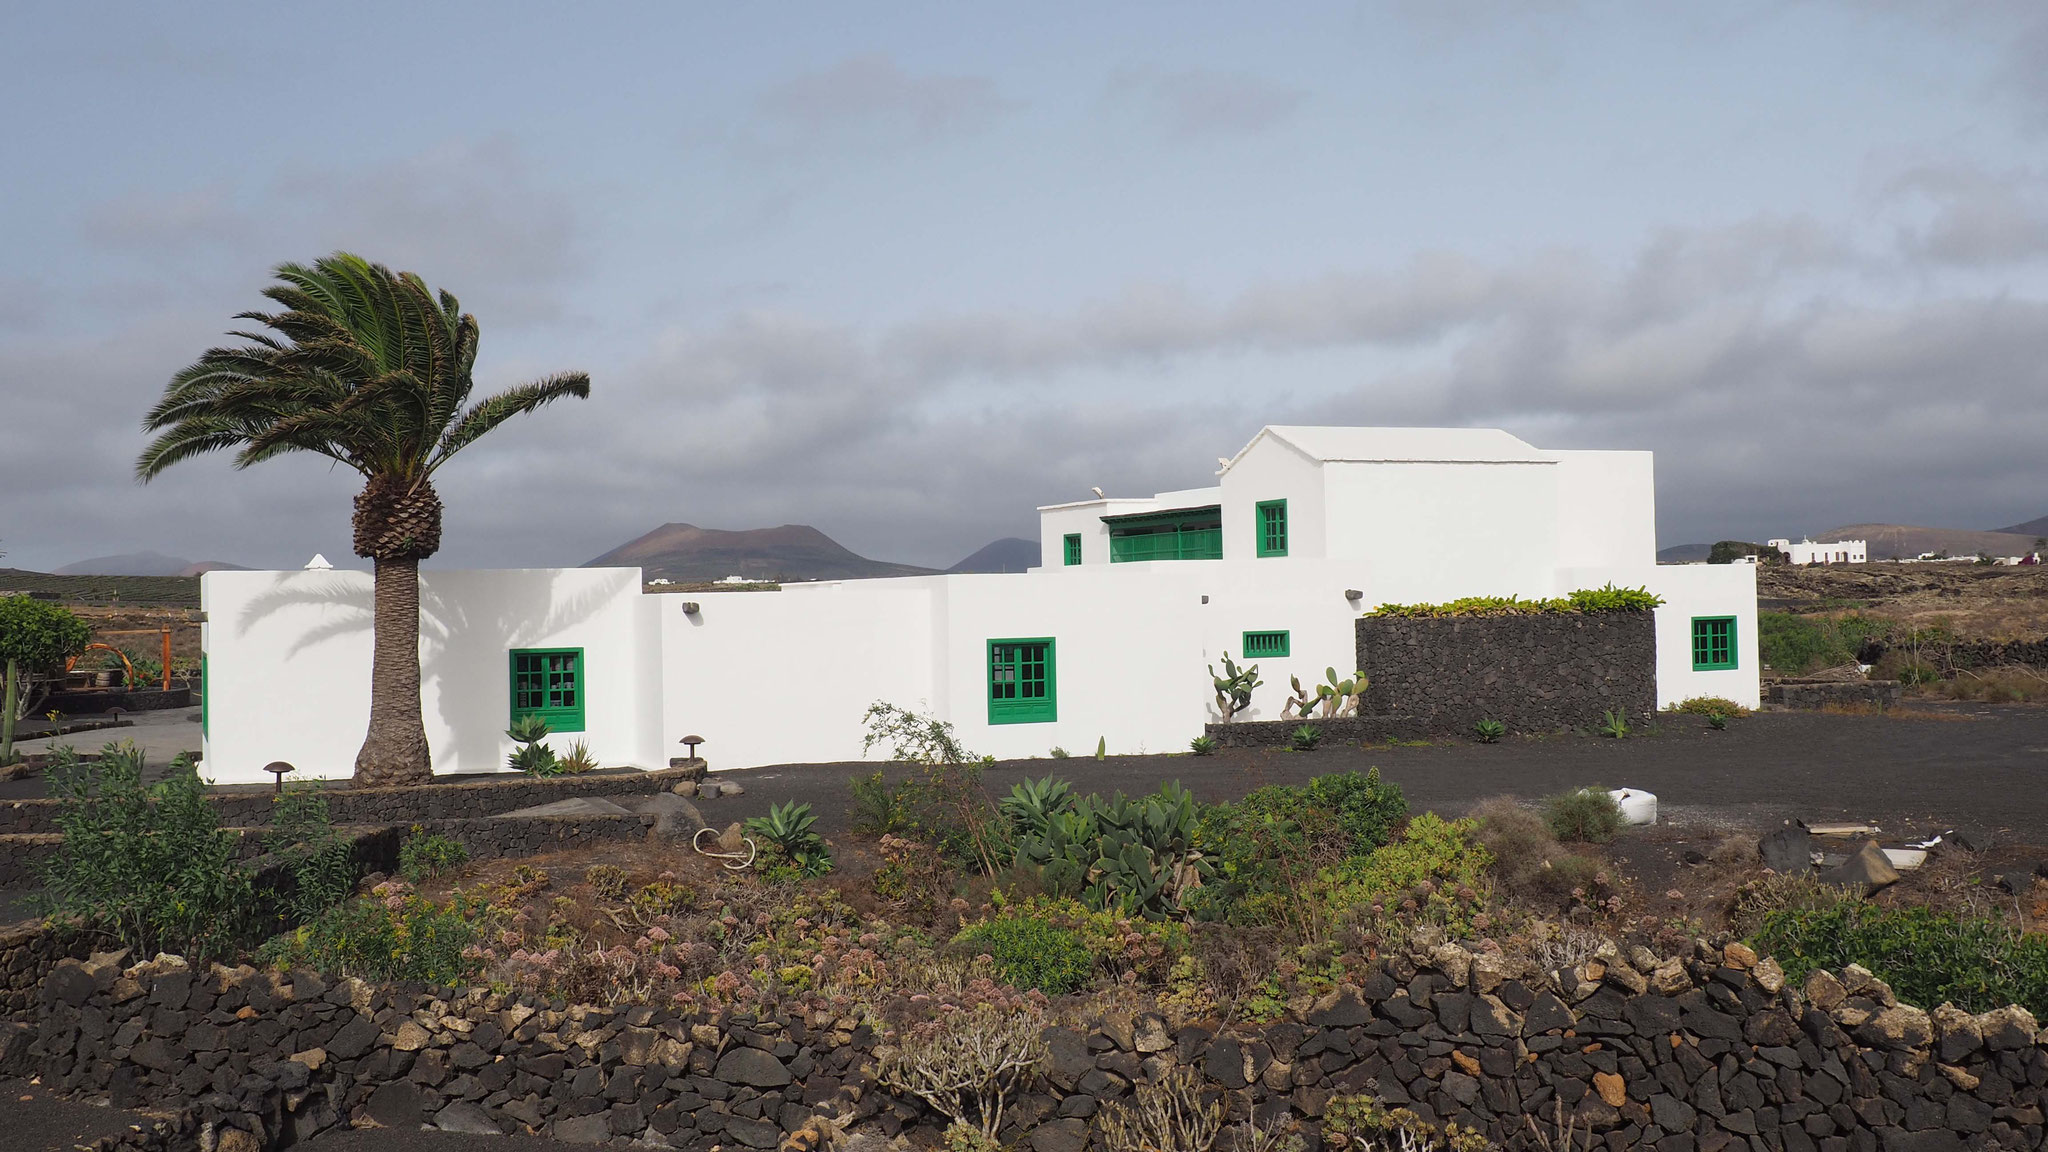 Les maisons blanches - Lanzarote - Canaries